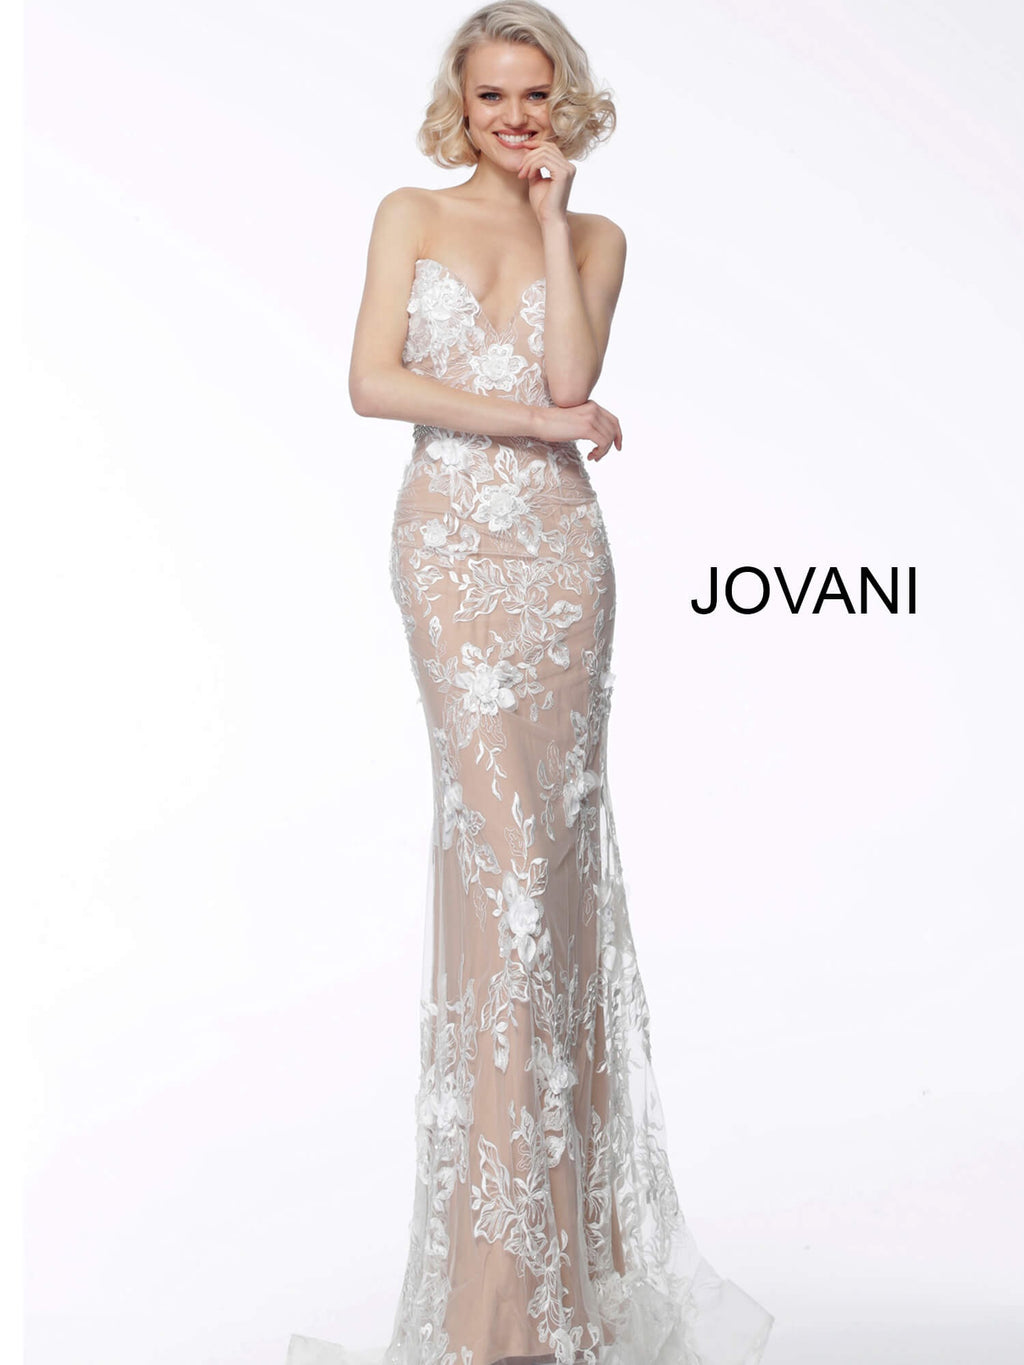 JOVANI 64031 Floral Appliqué Strapless Dress